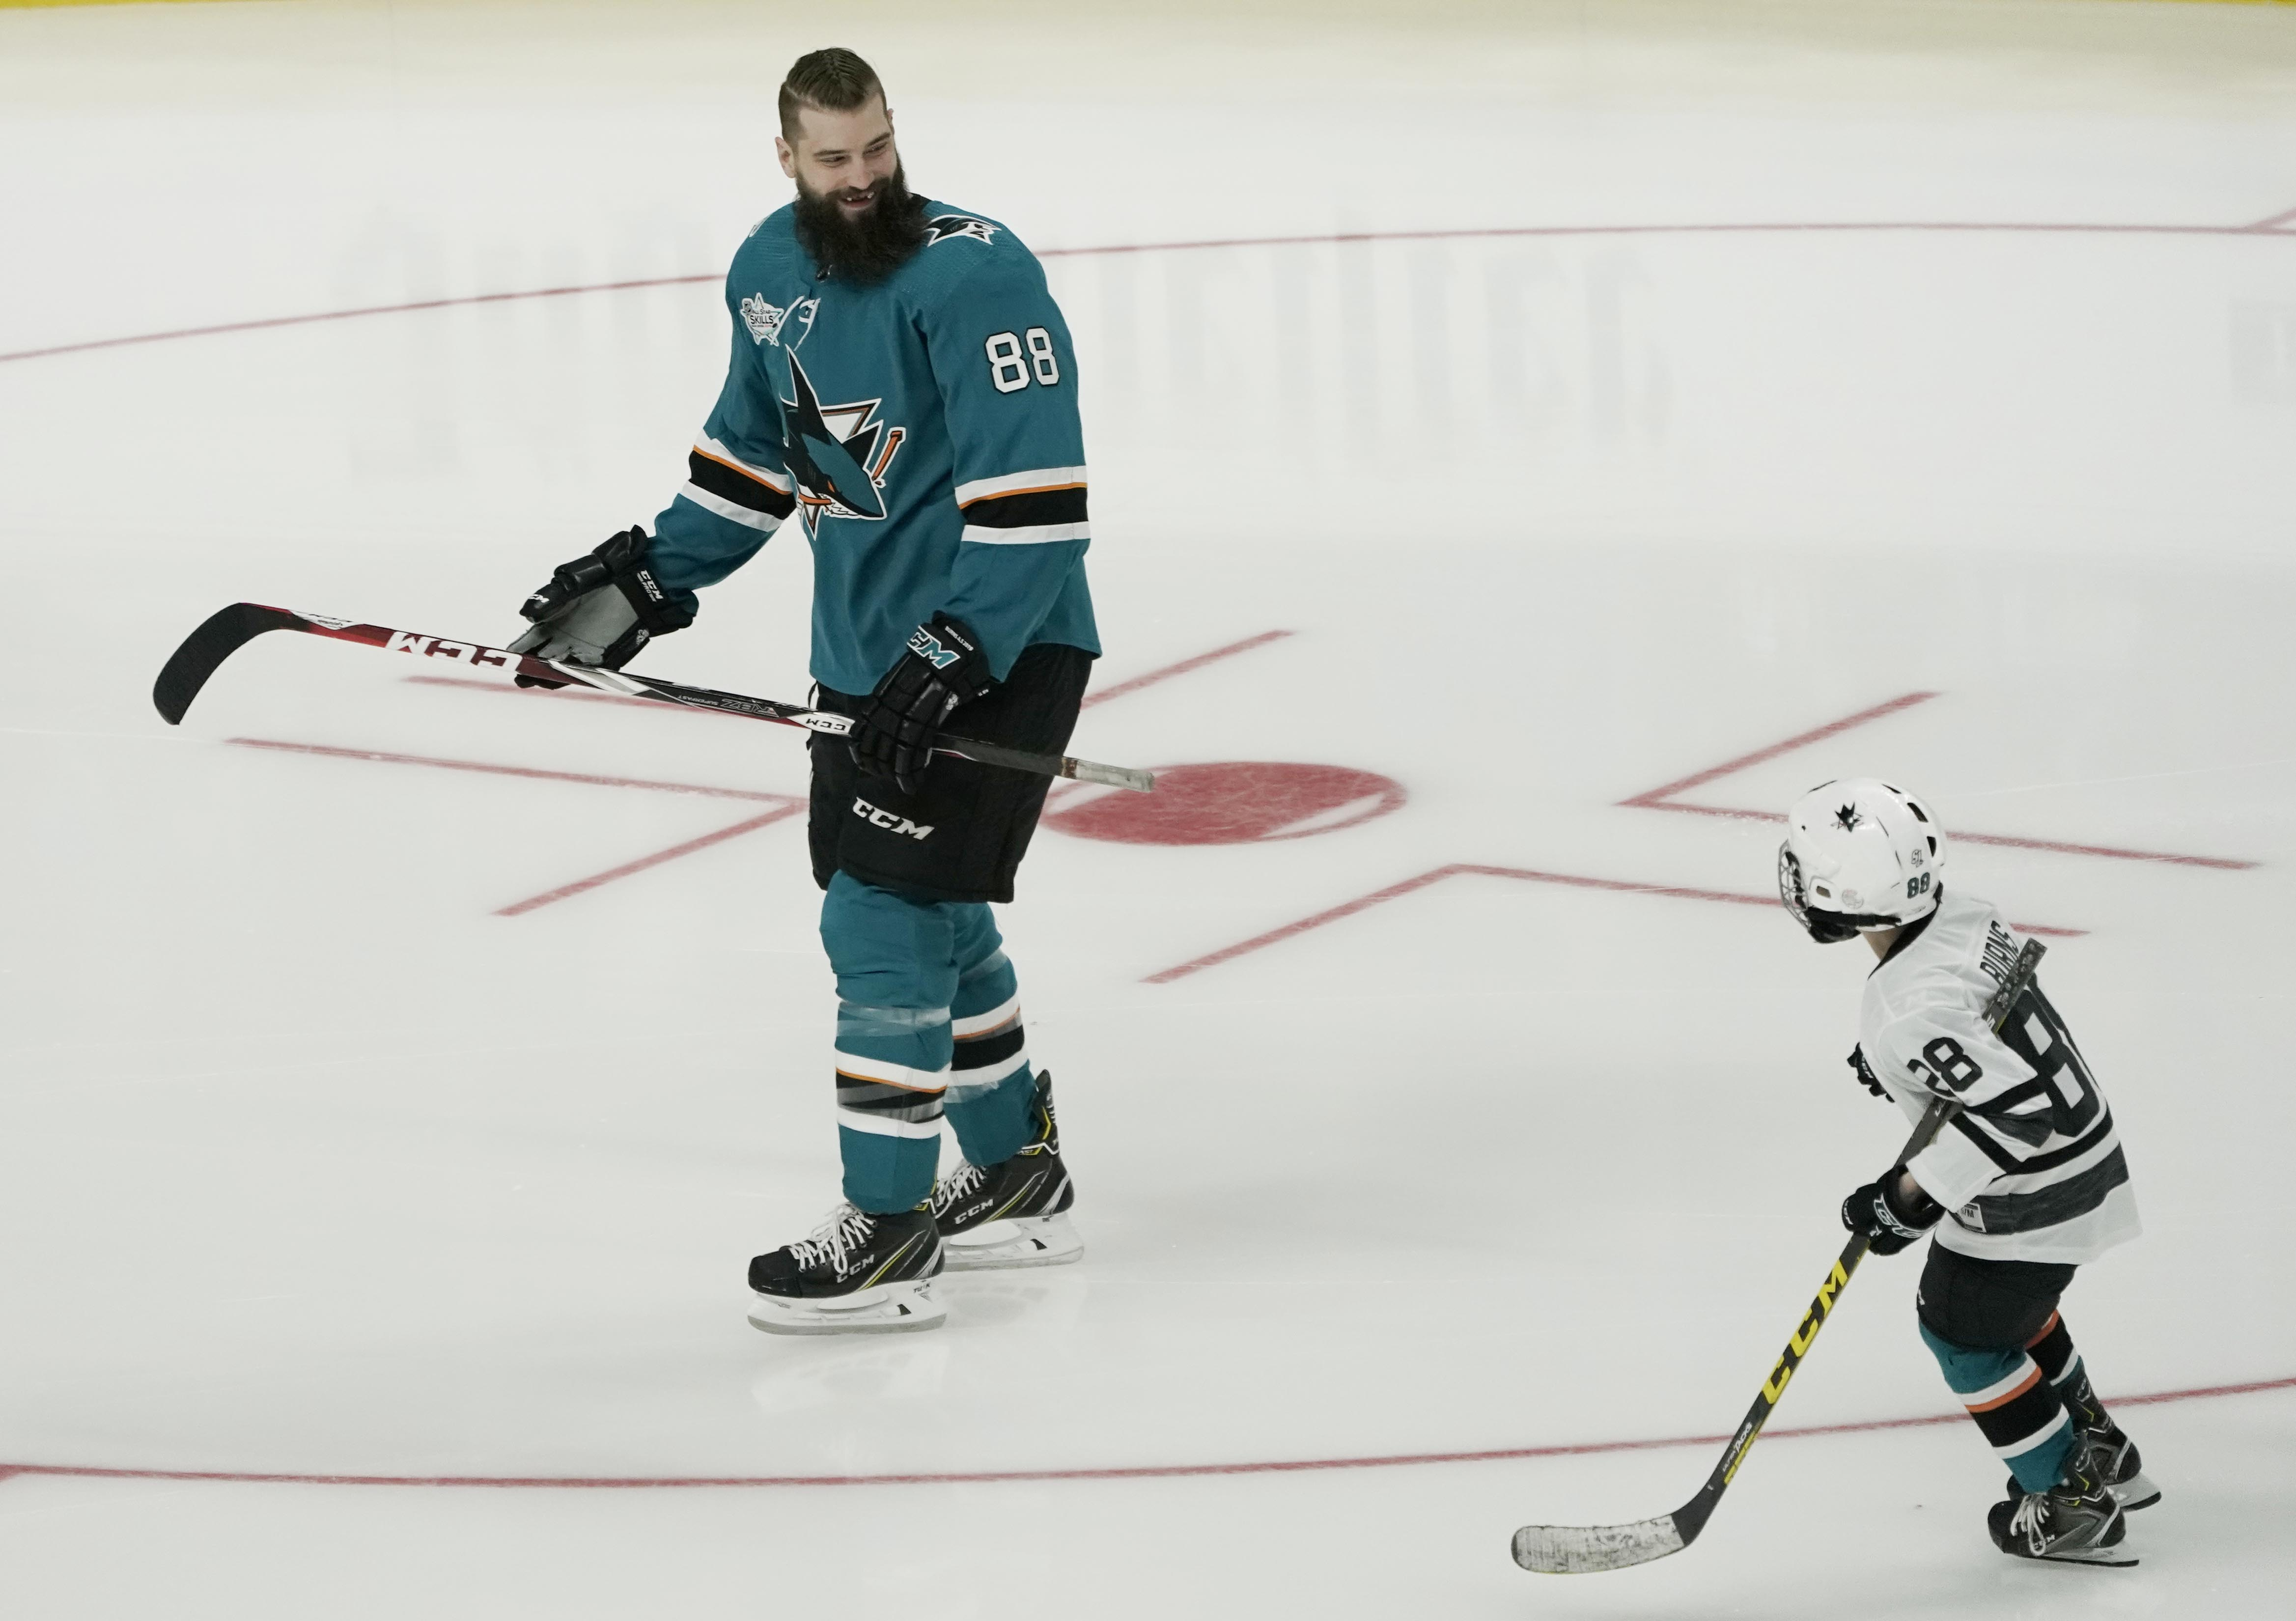 Jan 25, 2019; San Jose, CA, USA; Pacific Division player Brent Burns (88) of the San Jose Sharks warms up with his son before the 2019 NHL All Star Game skills competition at SAP Center. Mandatory Credit: Stan Szeto